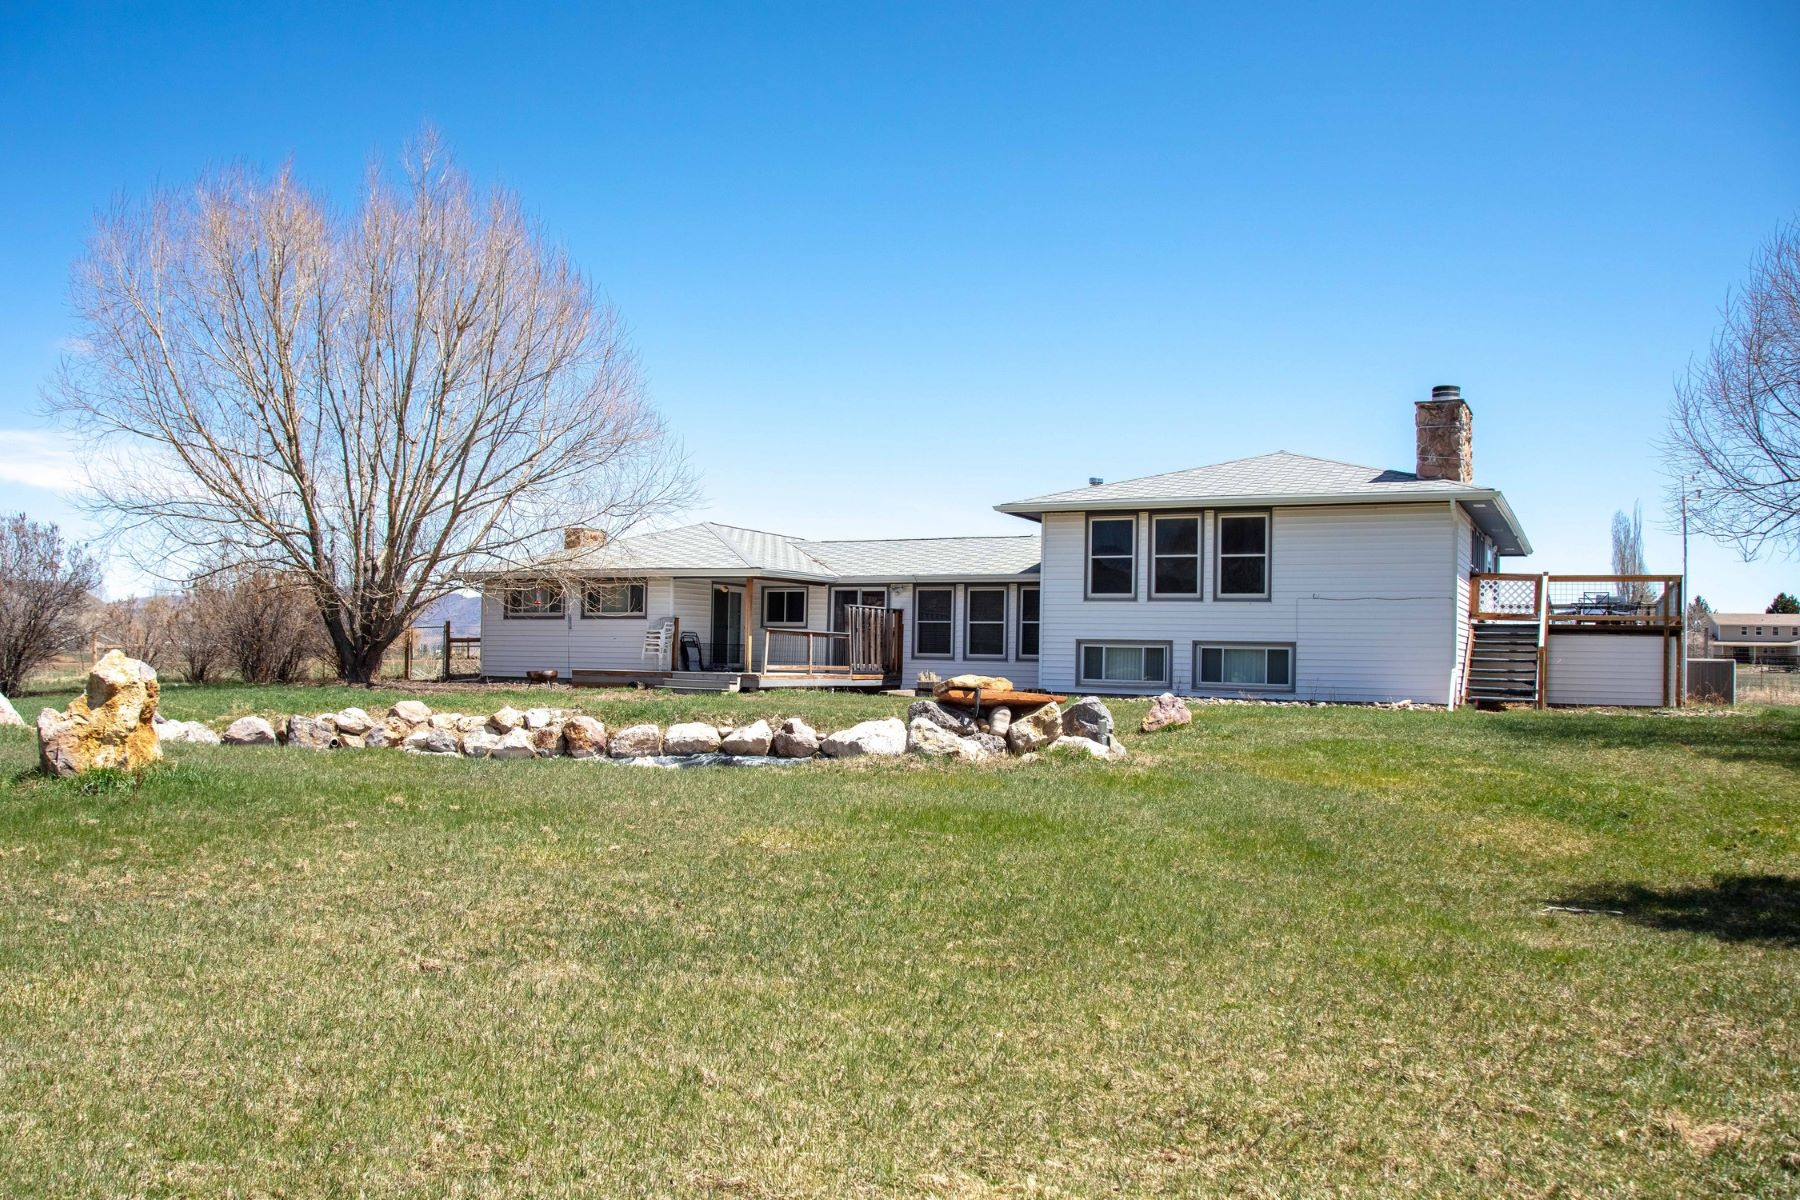 Single Family Homes for Sale at Large Rural Home With Acreage In Meeker 100 Mesa Drive Meeker, Colorado 81641 United States